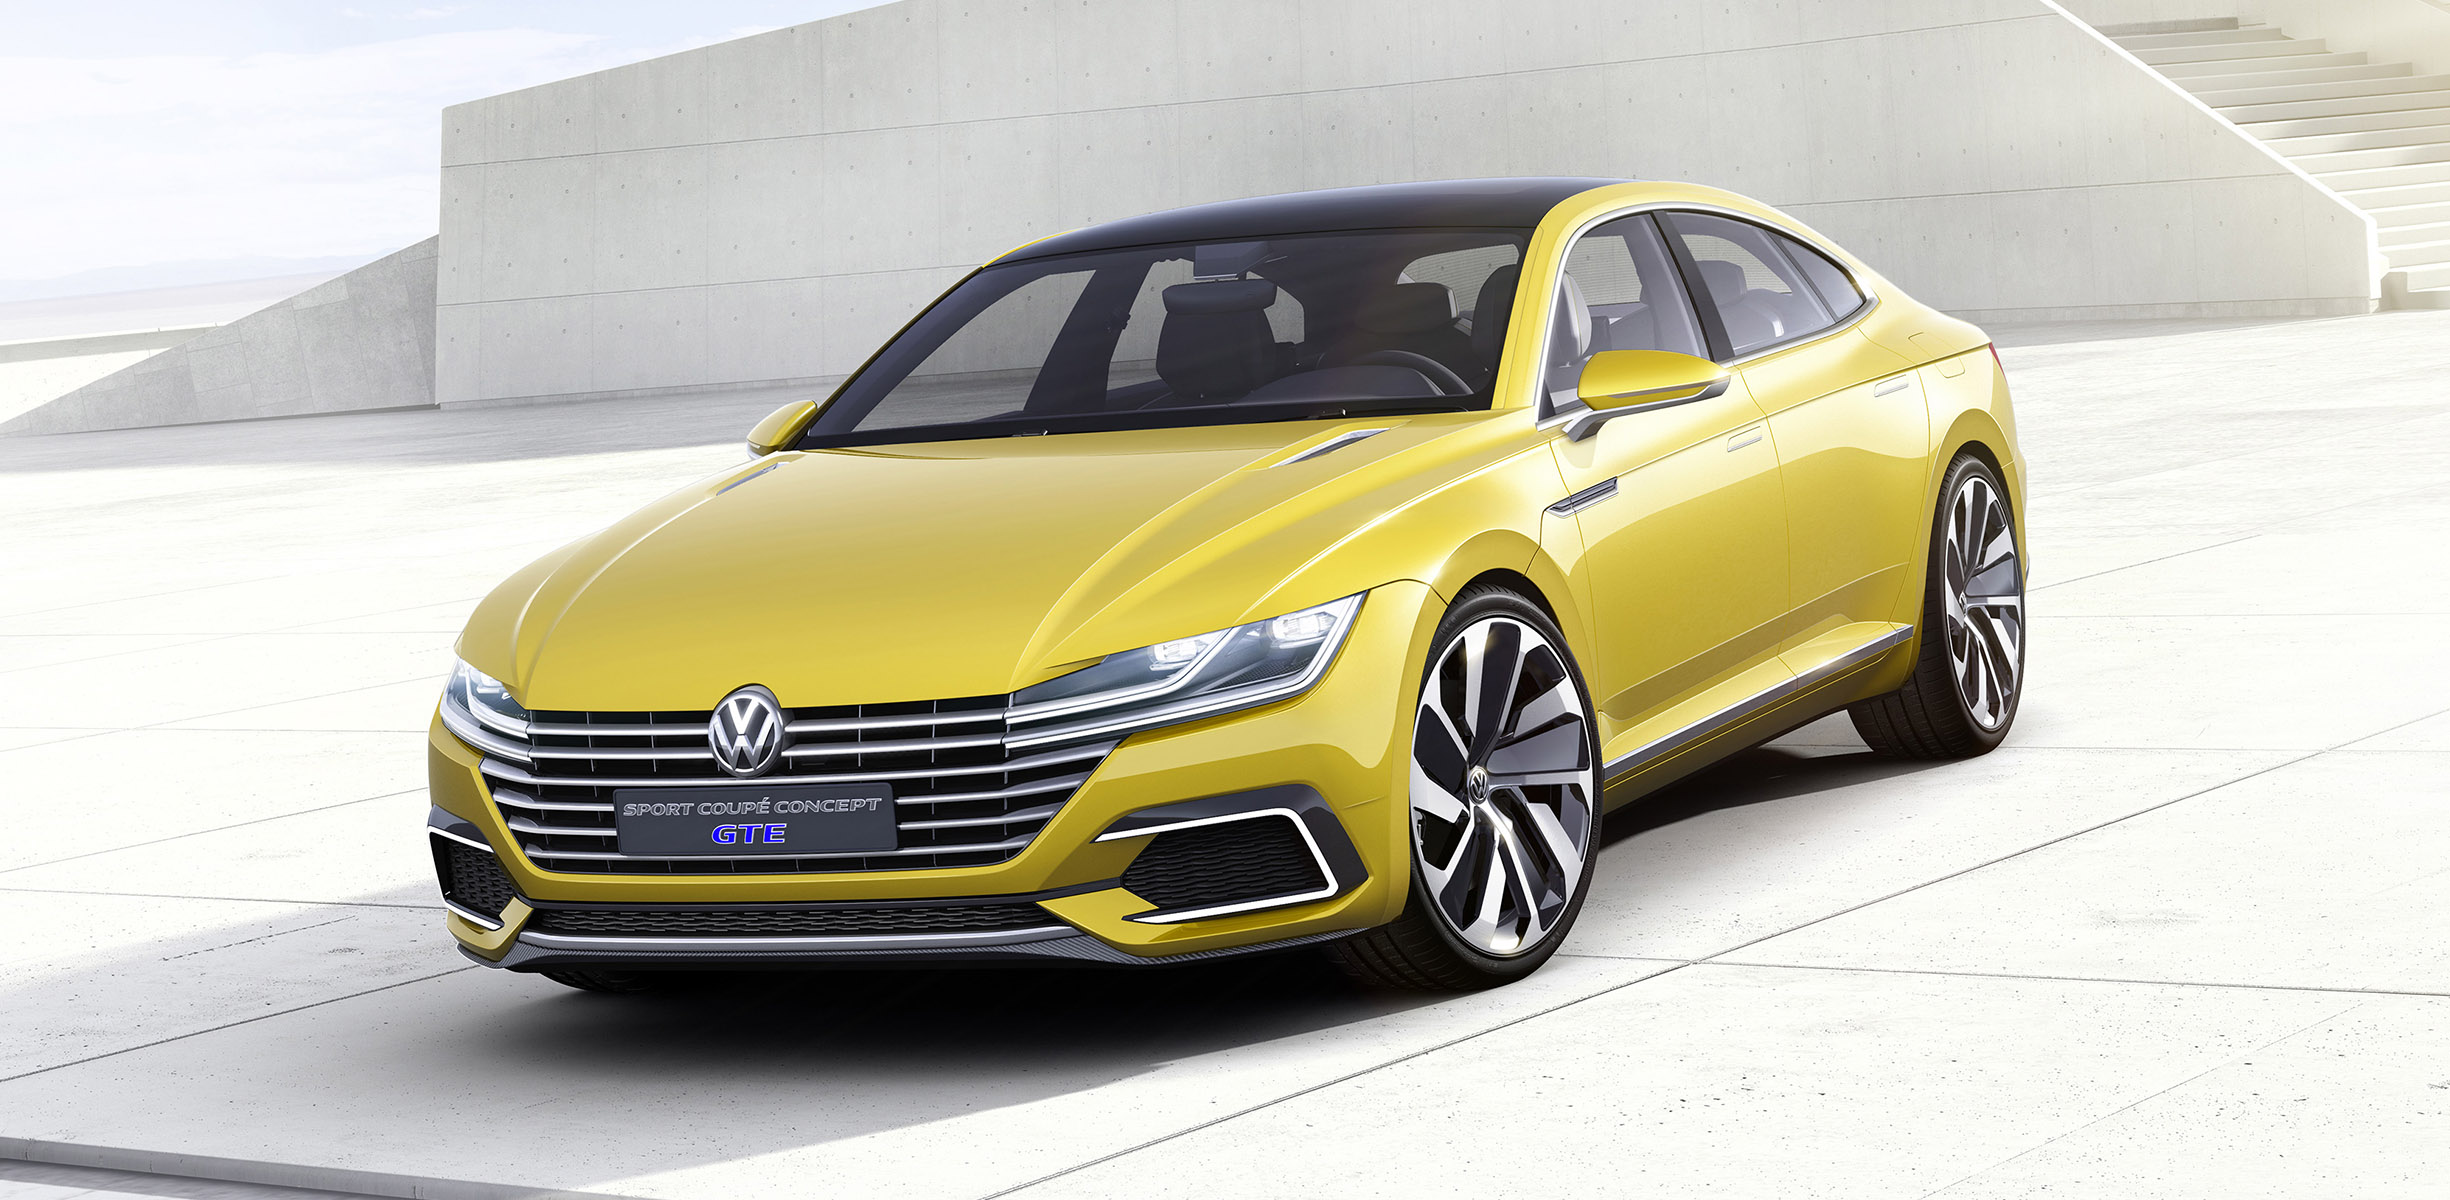 Volkswagen Sport Coupe Concept GTE Unveiled With V6 Plug In Hybrid  Drivetrain